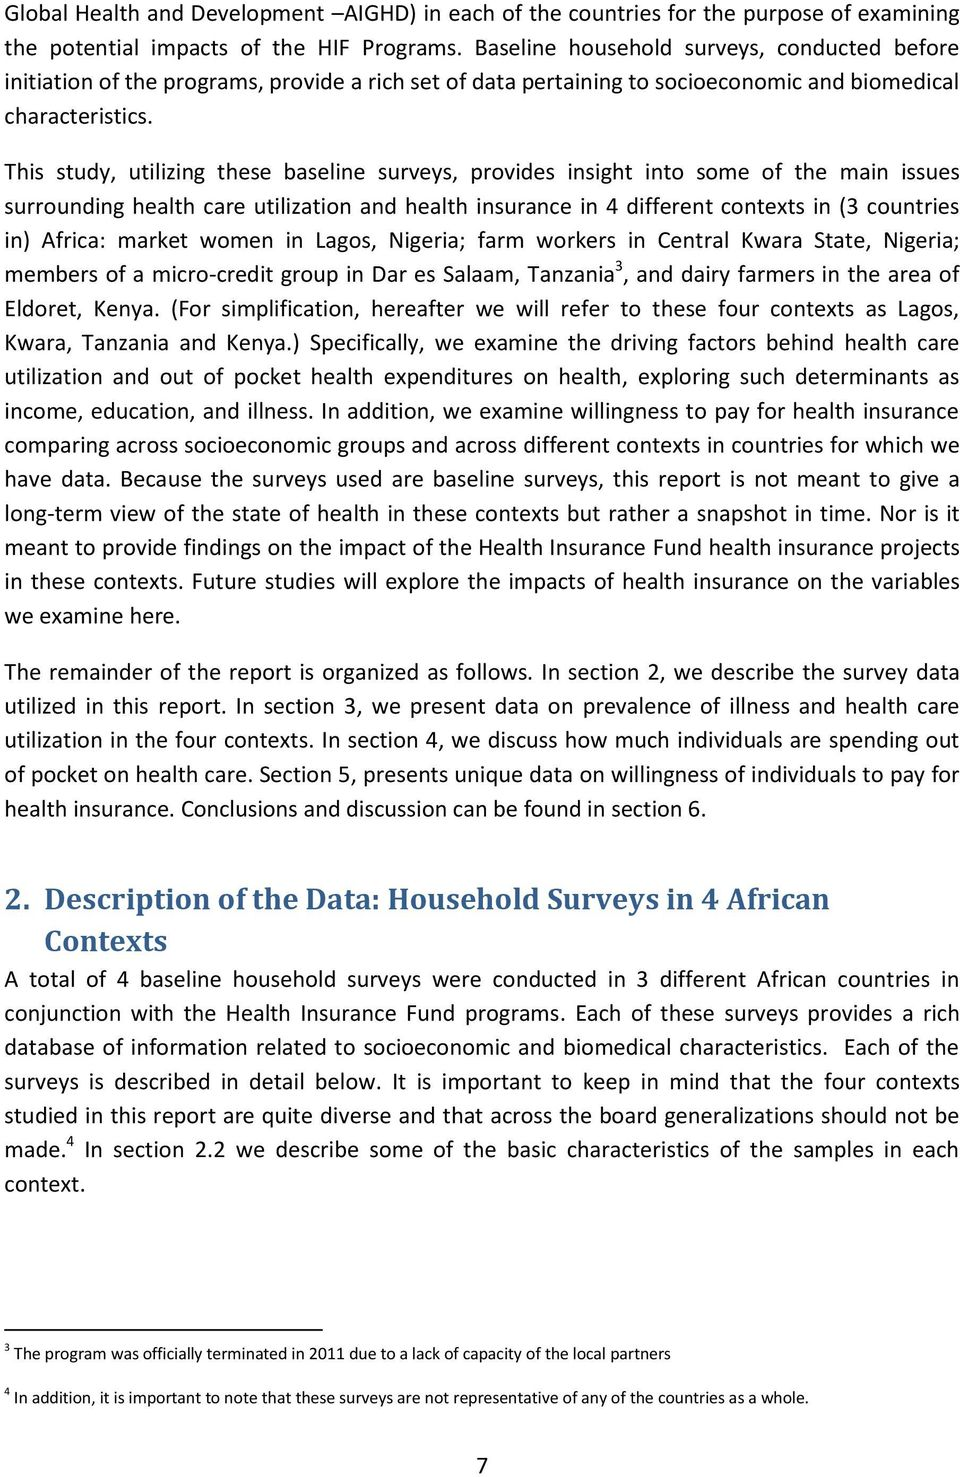 This study, utilizing these baseline surveys, provides insight into some of the main issues surrounding health care utilization and health insurance in 4 different contexts in (3 countries in)